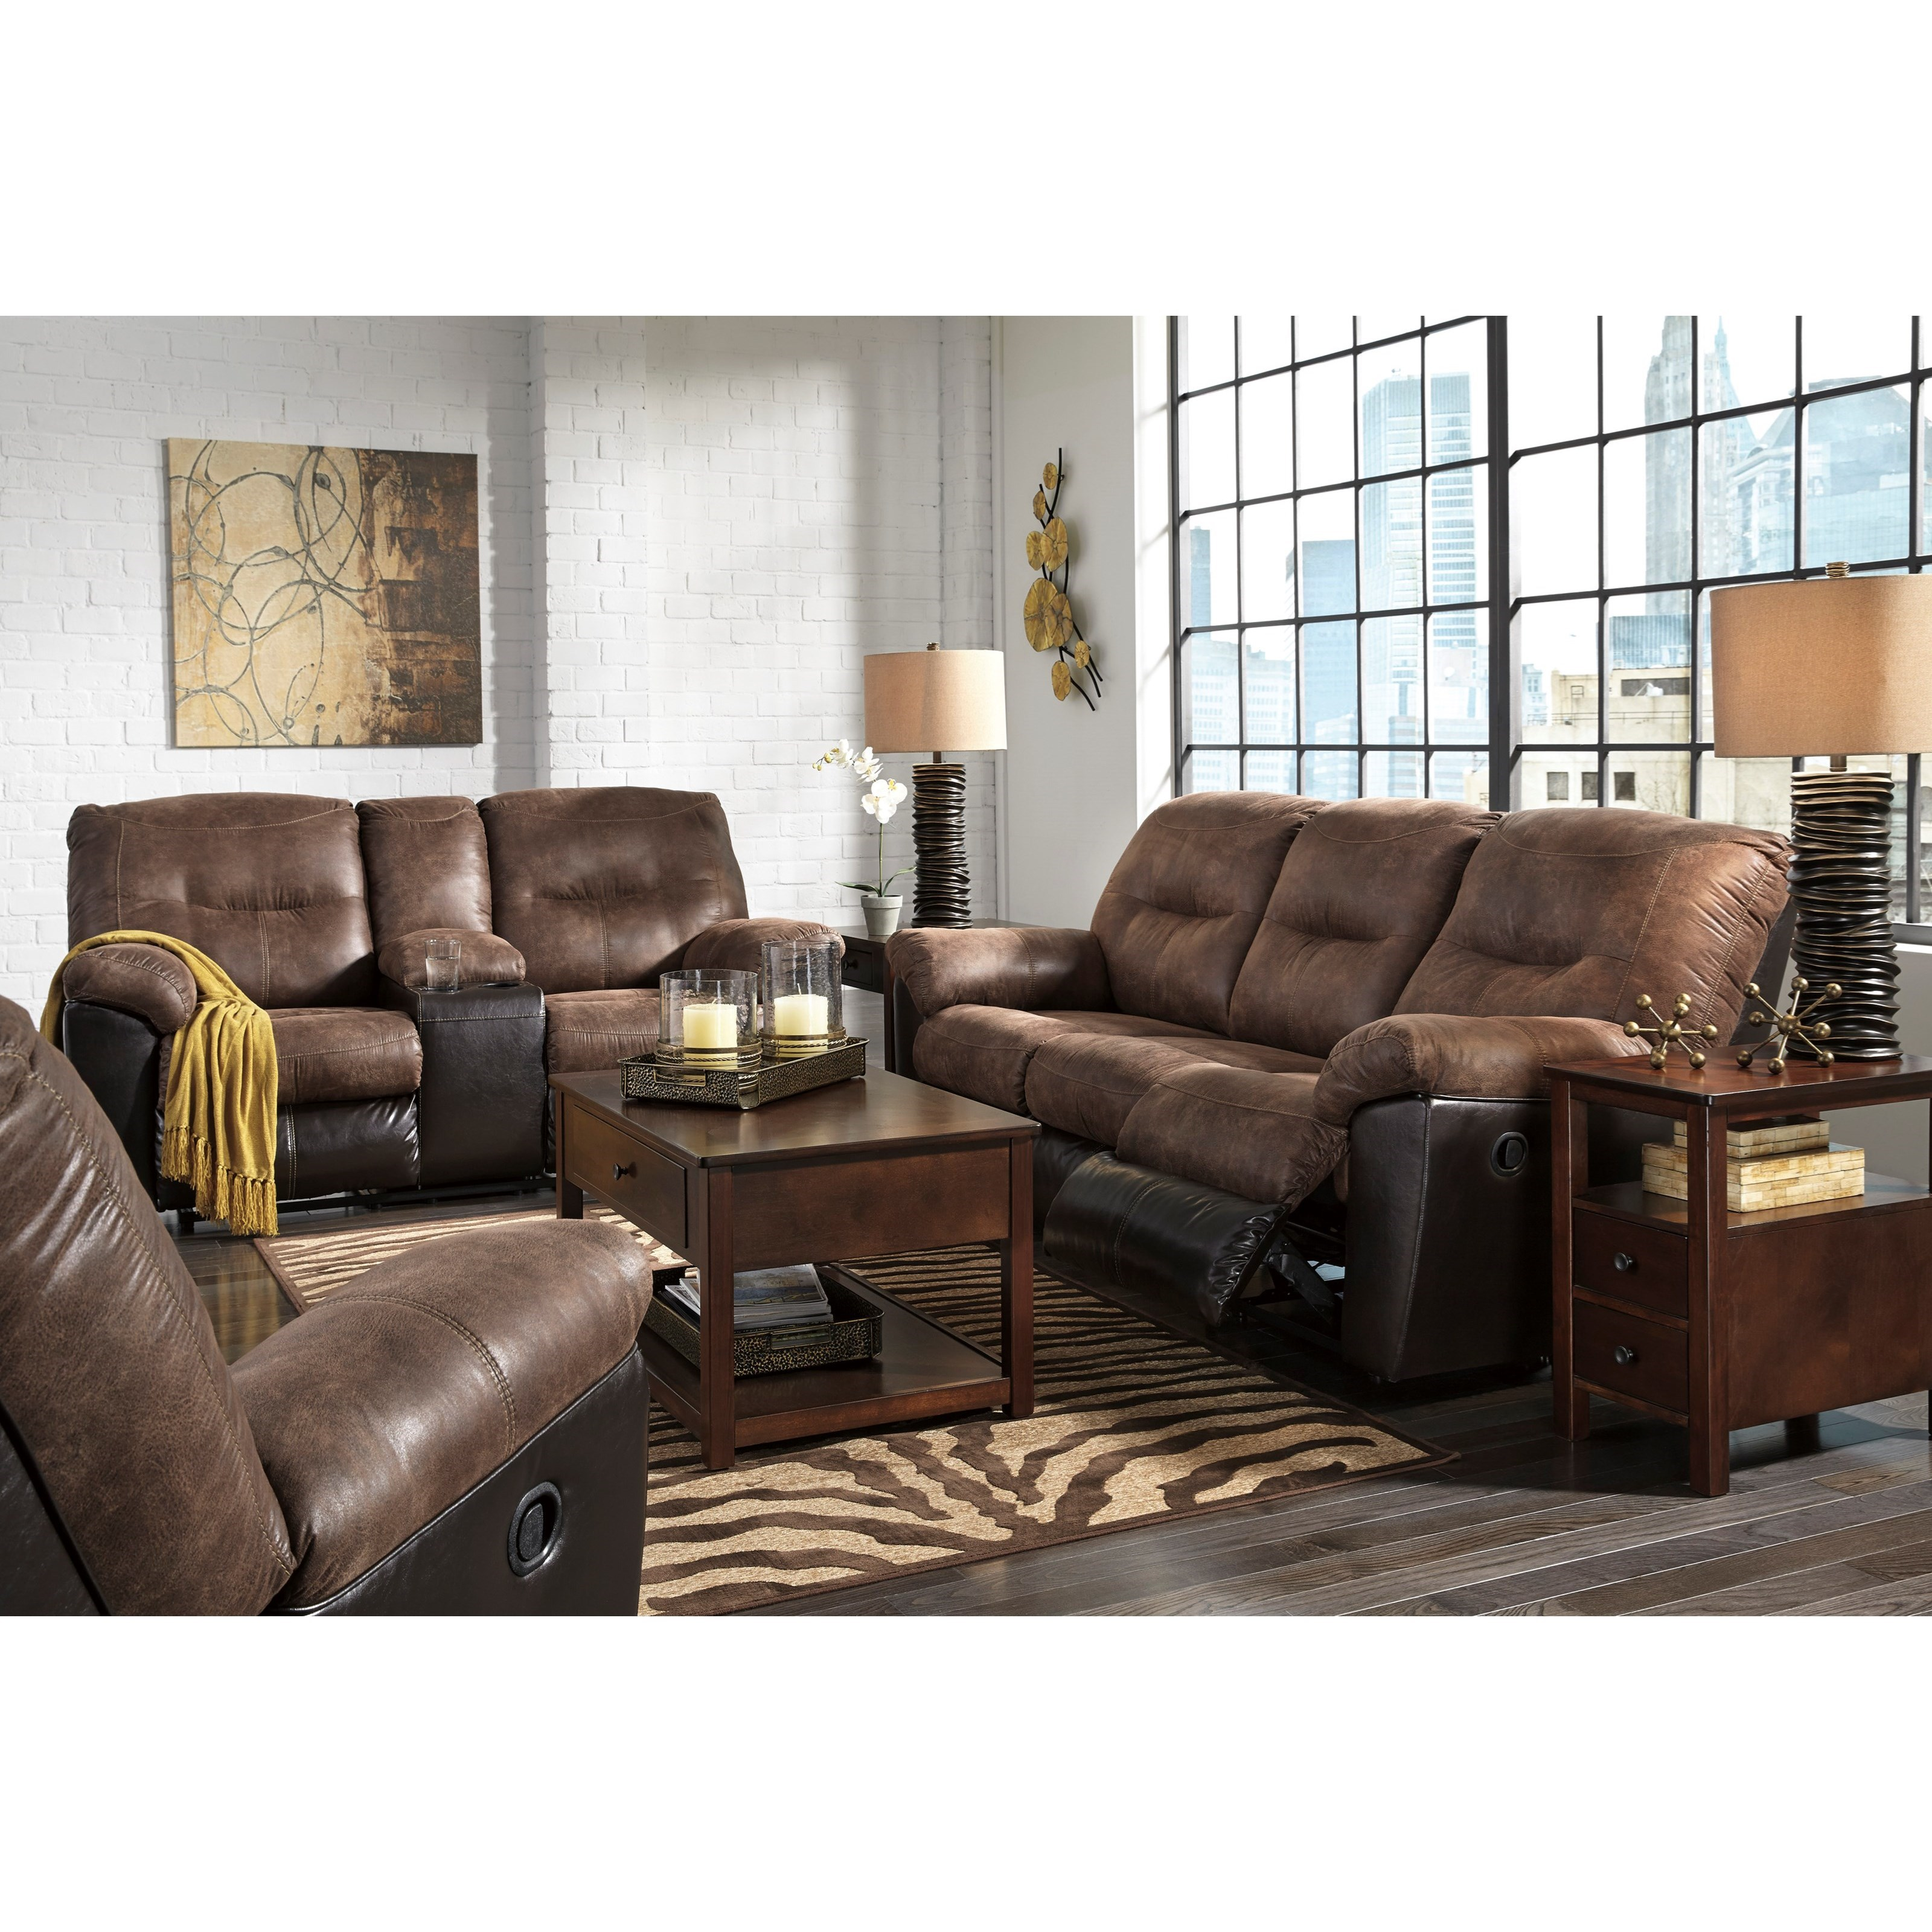 Signature design by ashley follett reclining living room for Living room furniture groups